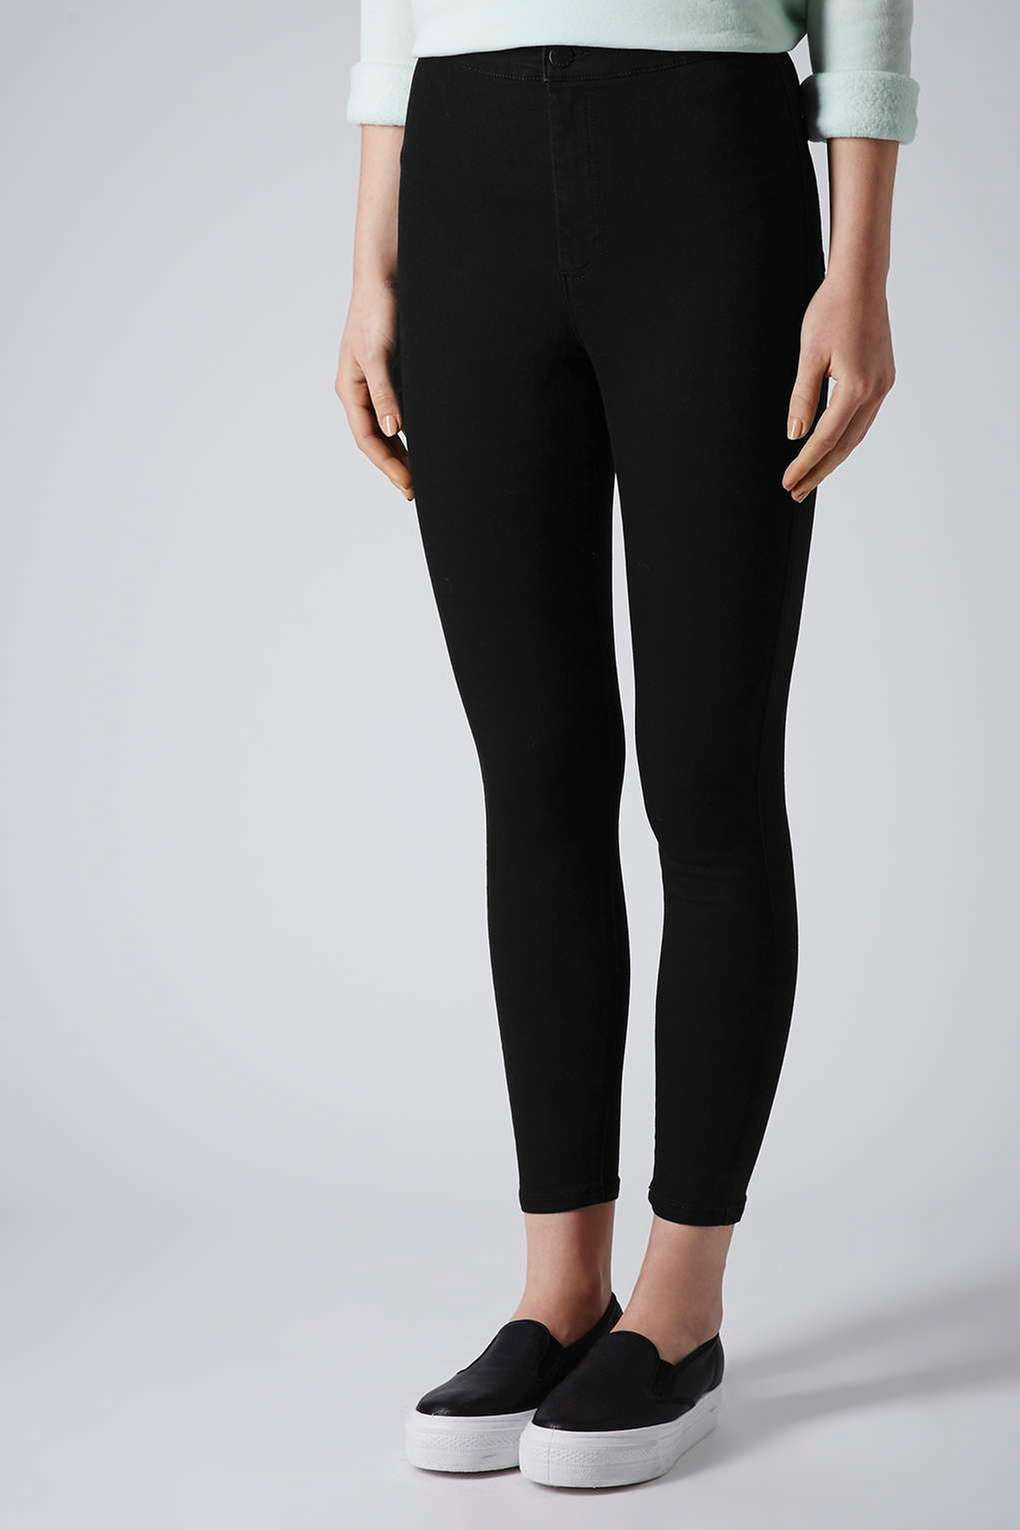 Topshop Womens Petite MOTO Joni Jeans - Discount Pay With Visa Outlet Clearance Lowest Price i9QUsY